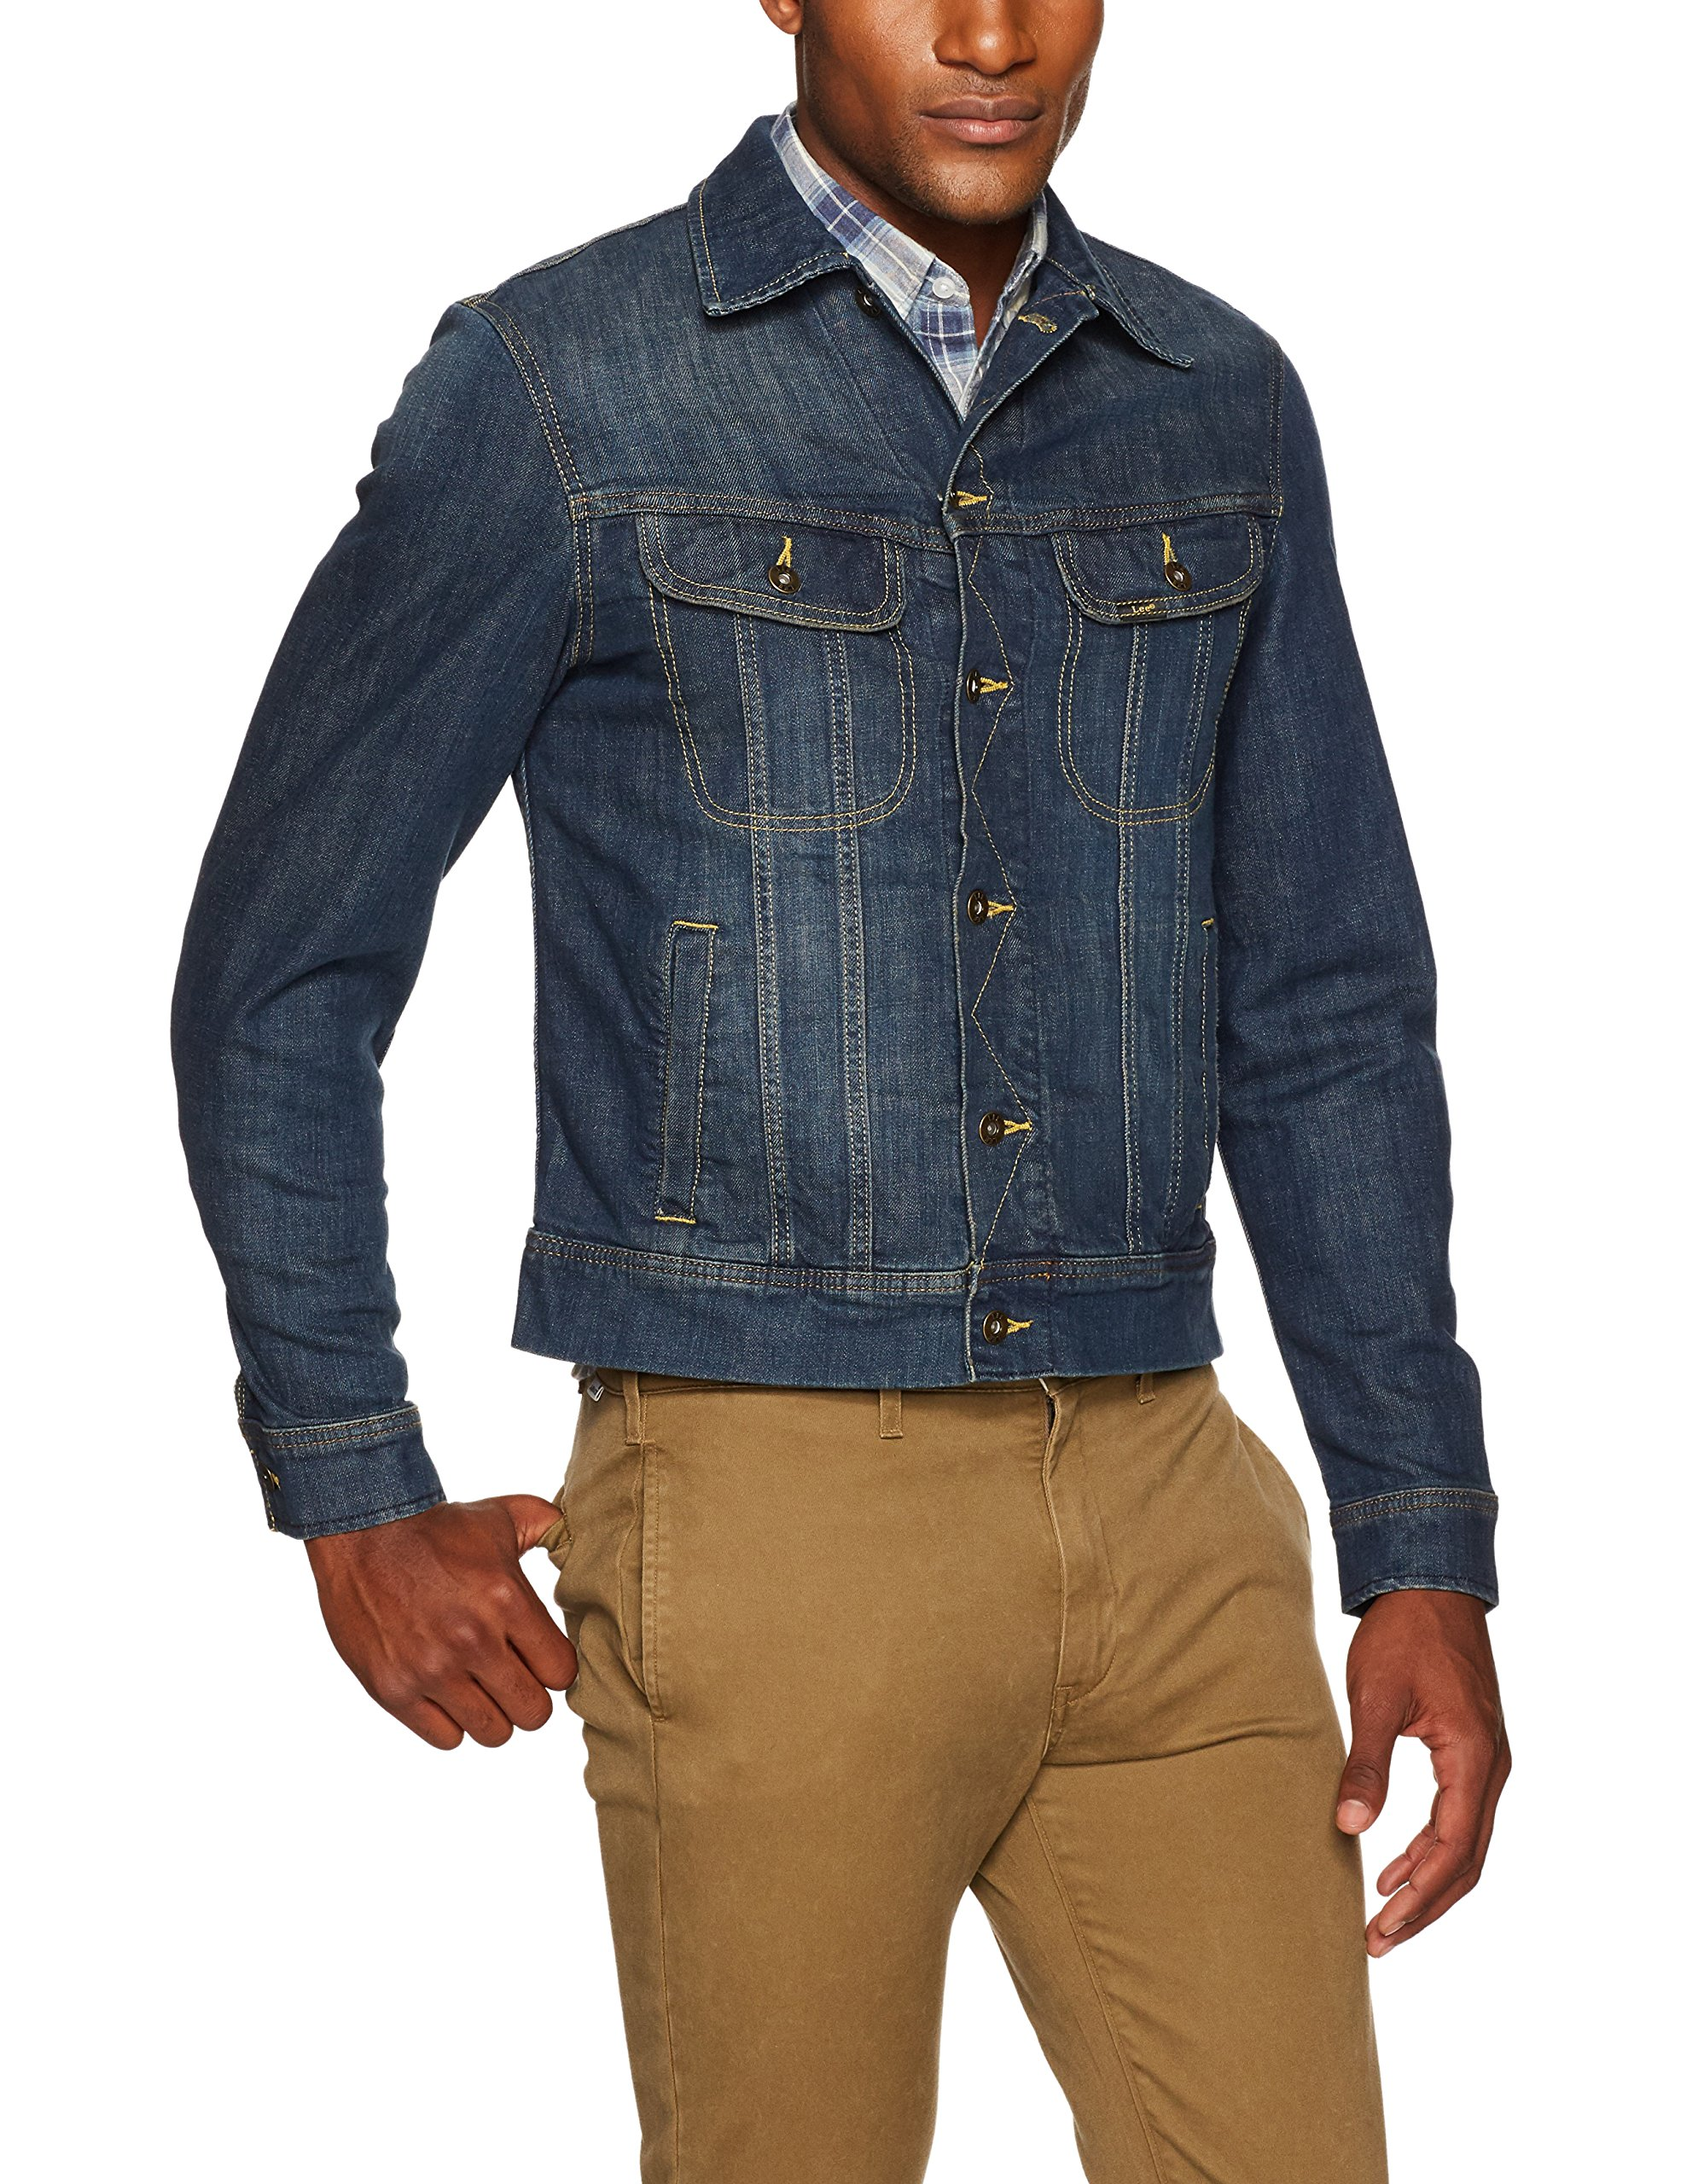 LEE Men's Denim Jacket, Radler, Medium by LEE